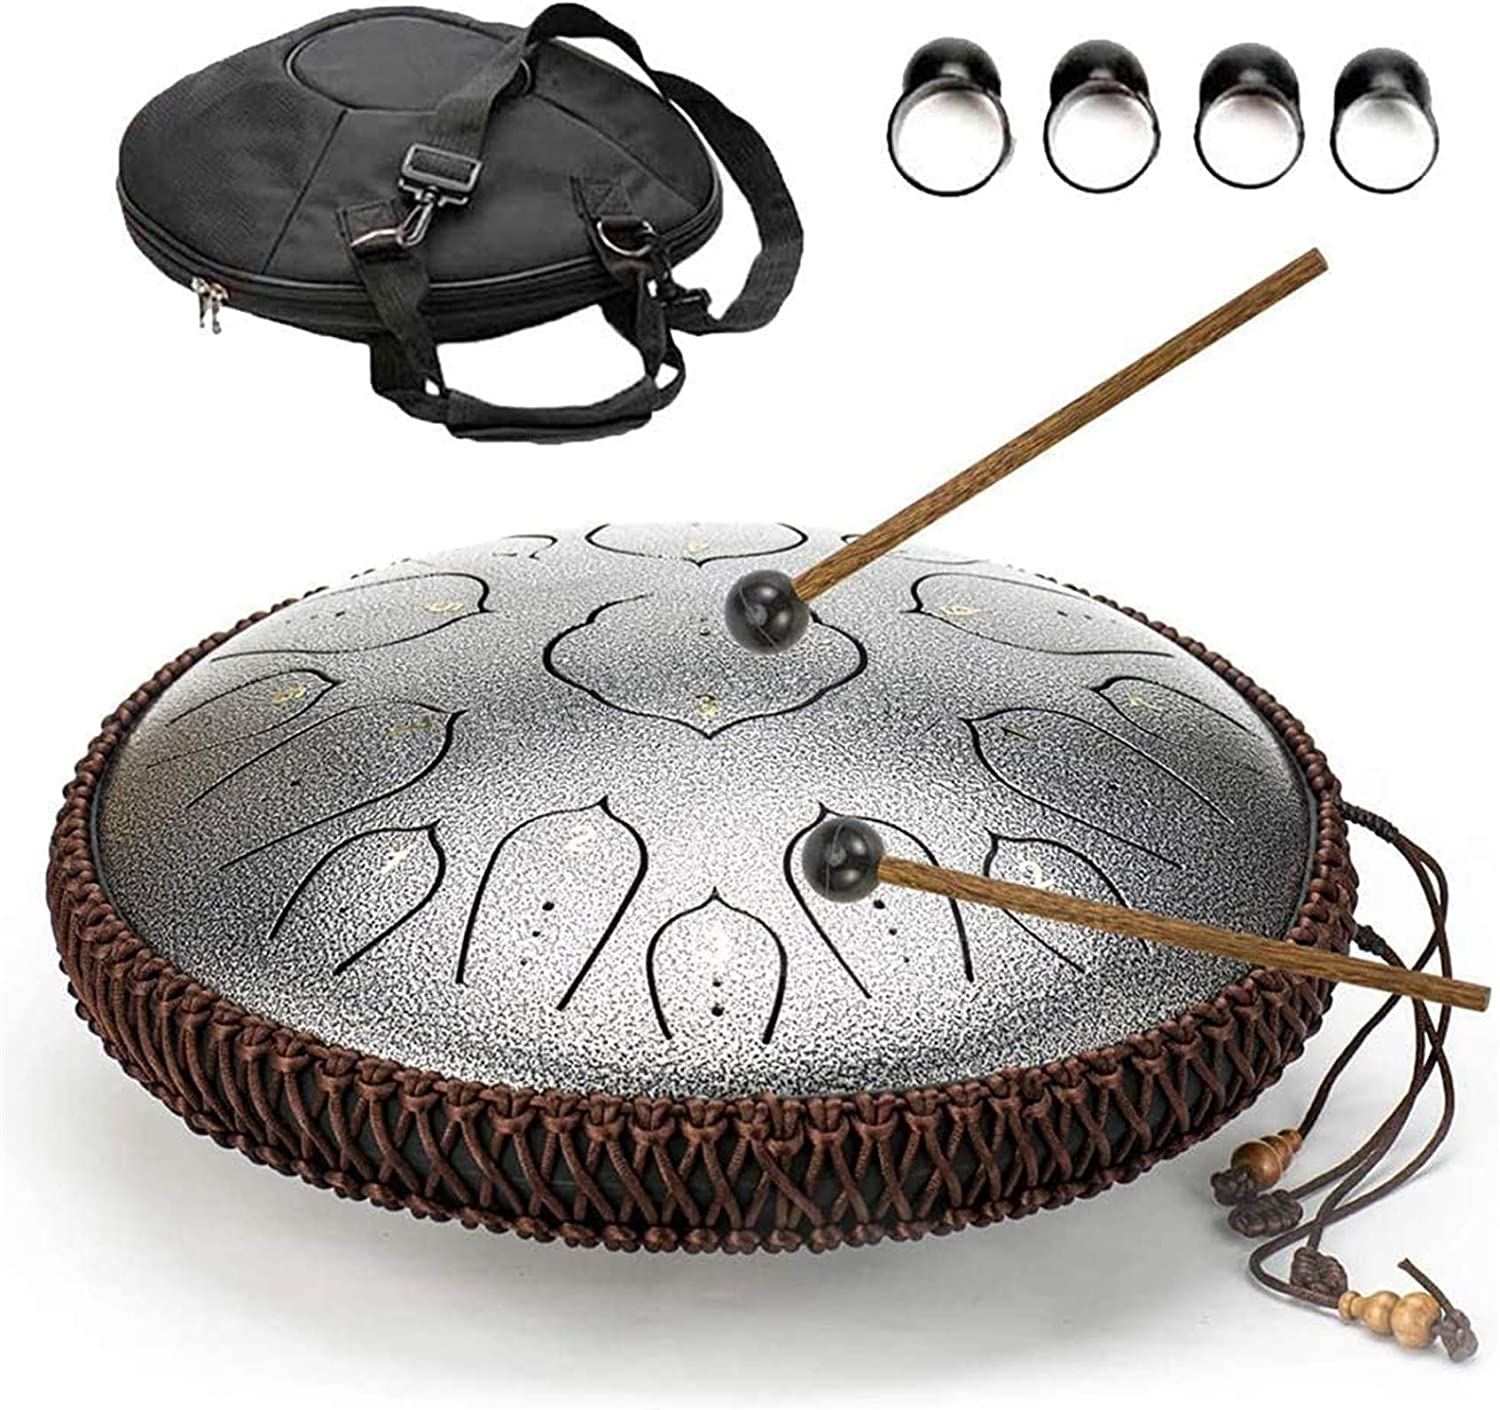 PIAOLIGN Steel Tongue Drum 15 Notes Manual Inch Shape Cymbal 14 Max 50% OFF 40% OFF Cheap Sale